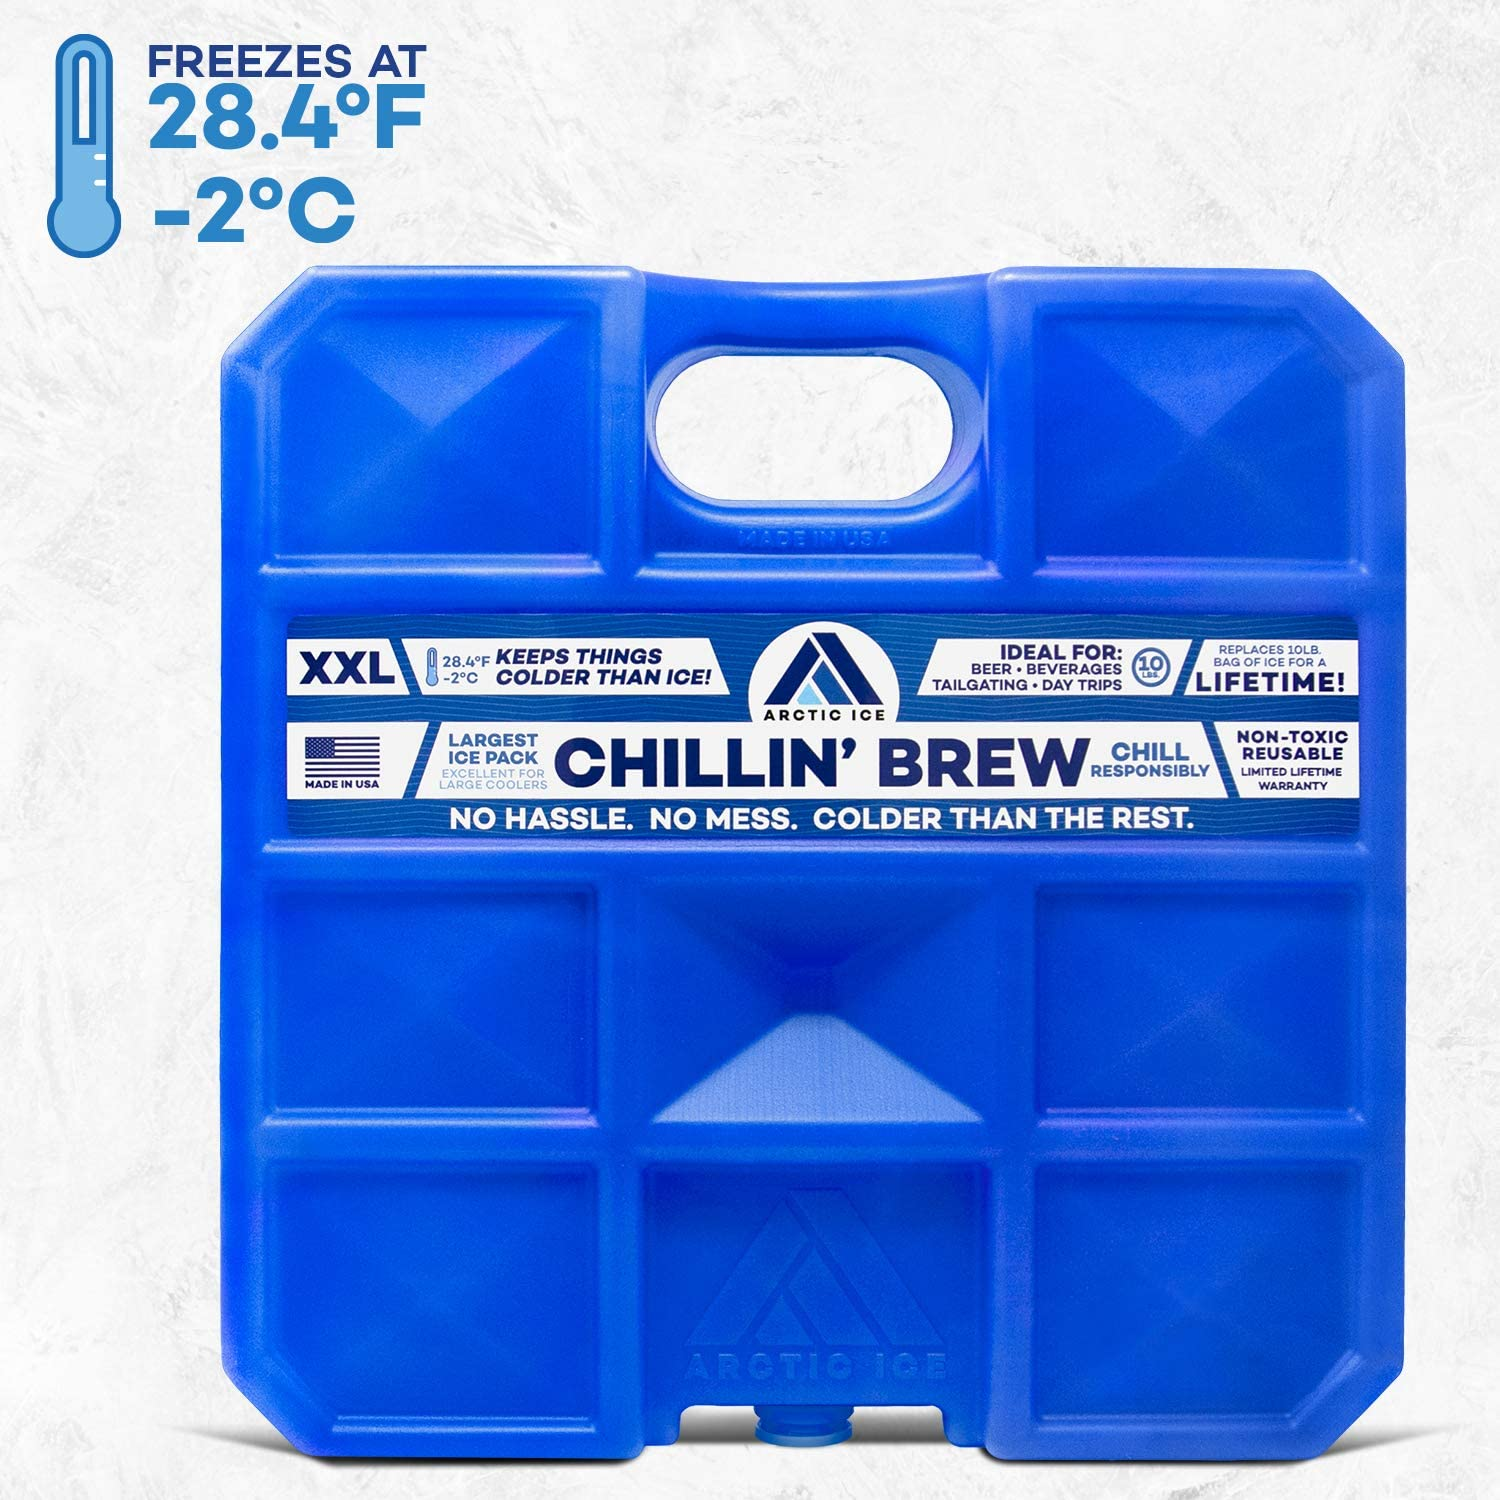 Arctic Ice Chillin' Brew Series Reusable Ice Pack for Coolers, Lunch Boxes, Camping, Fishing, Hunting and More, Freezes at 28F - XX-Large (10 LBS)